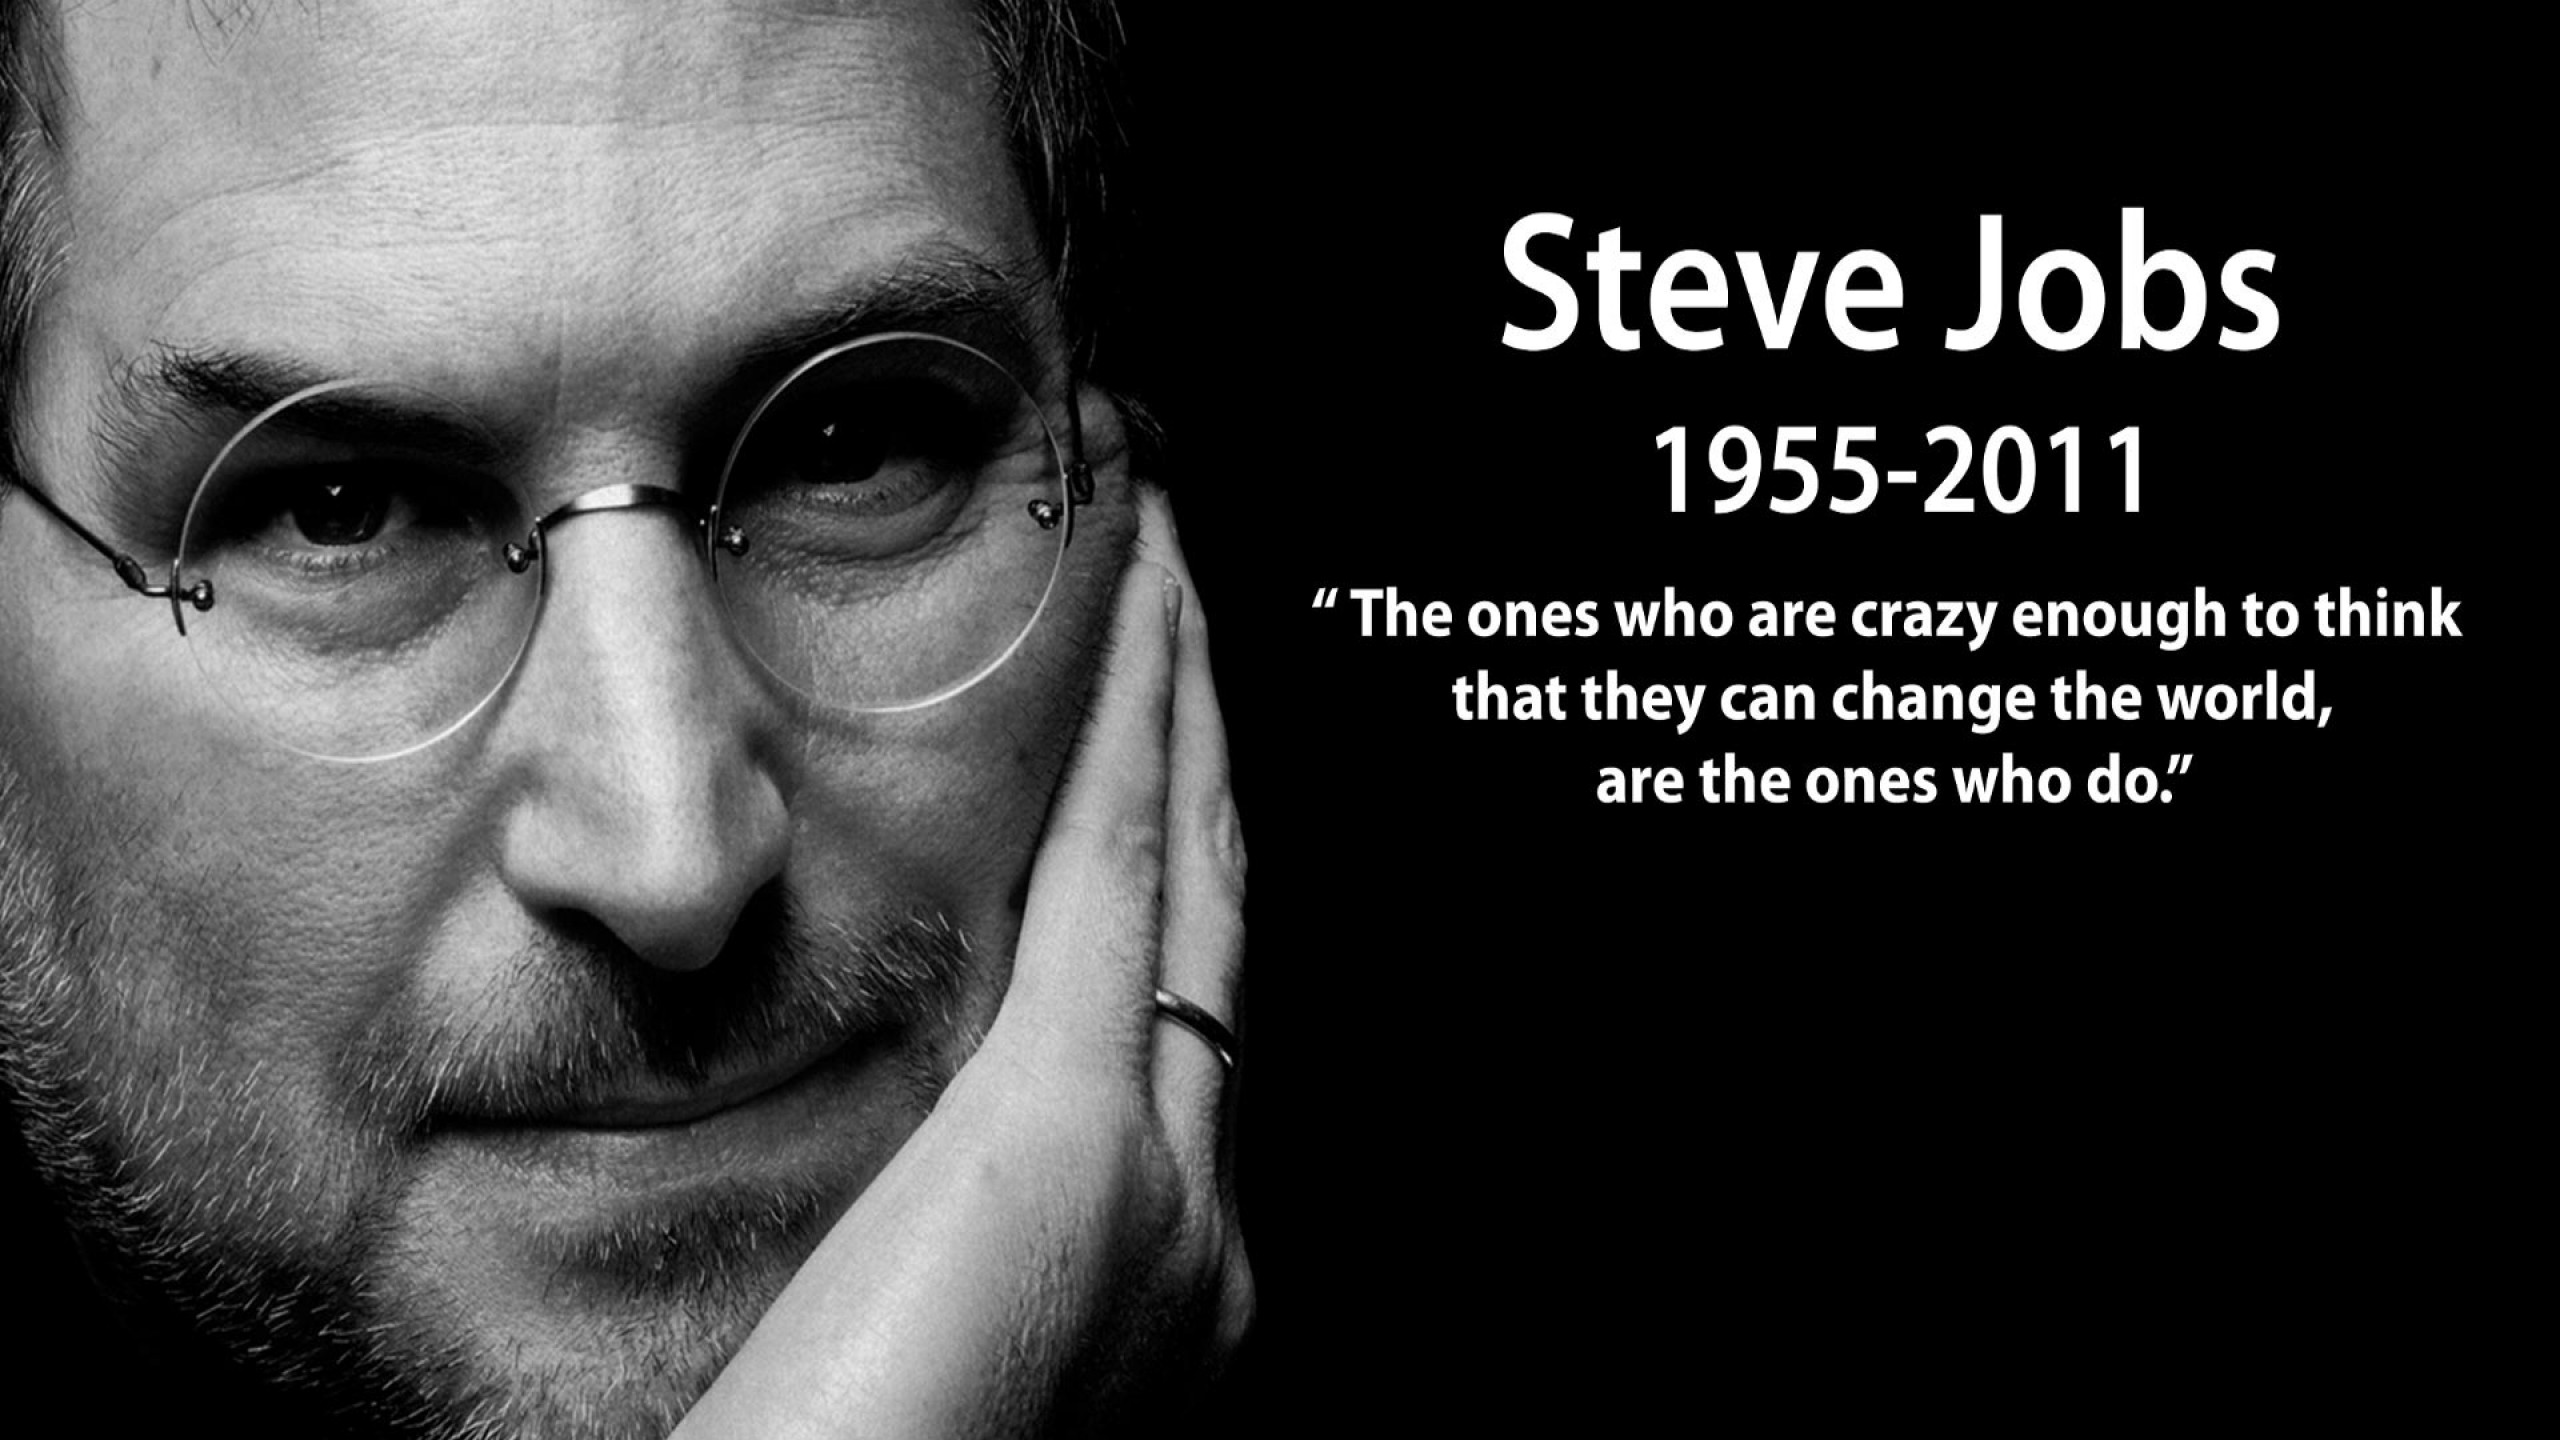 good steve jobs quote